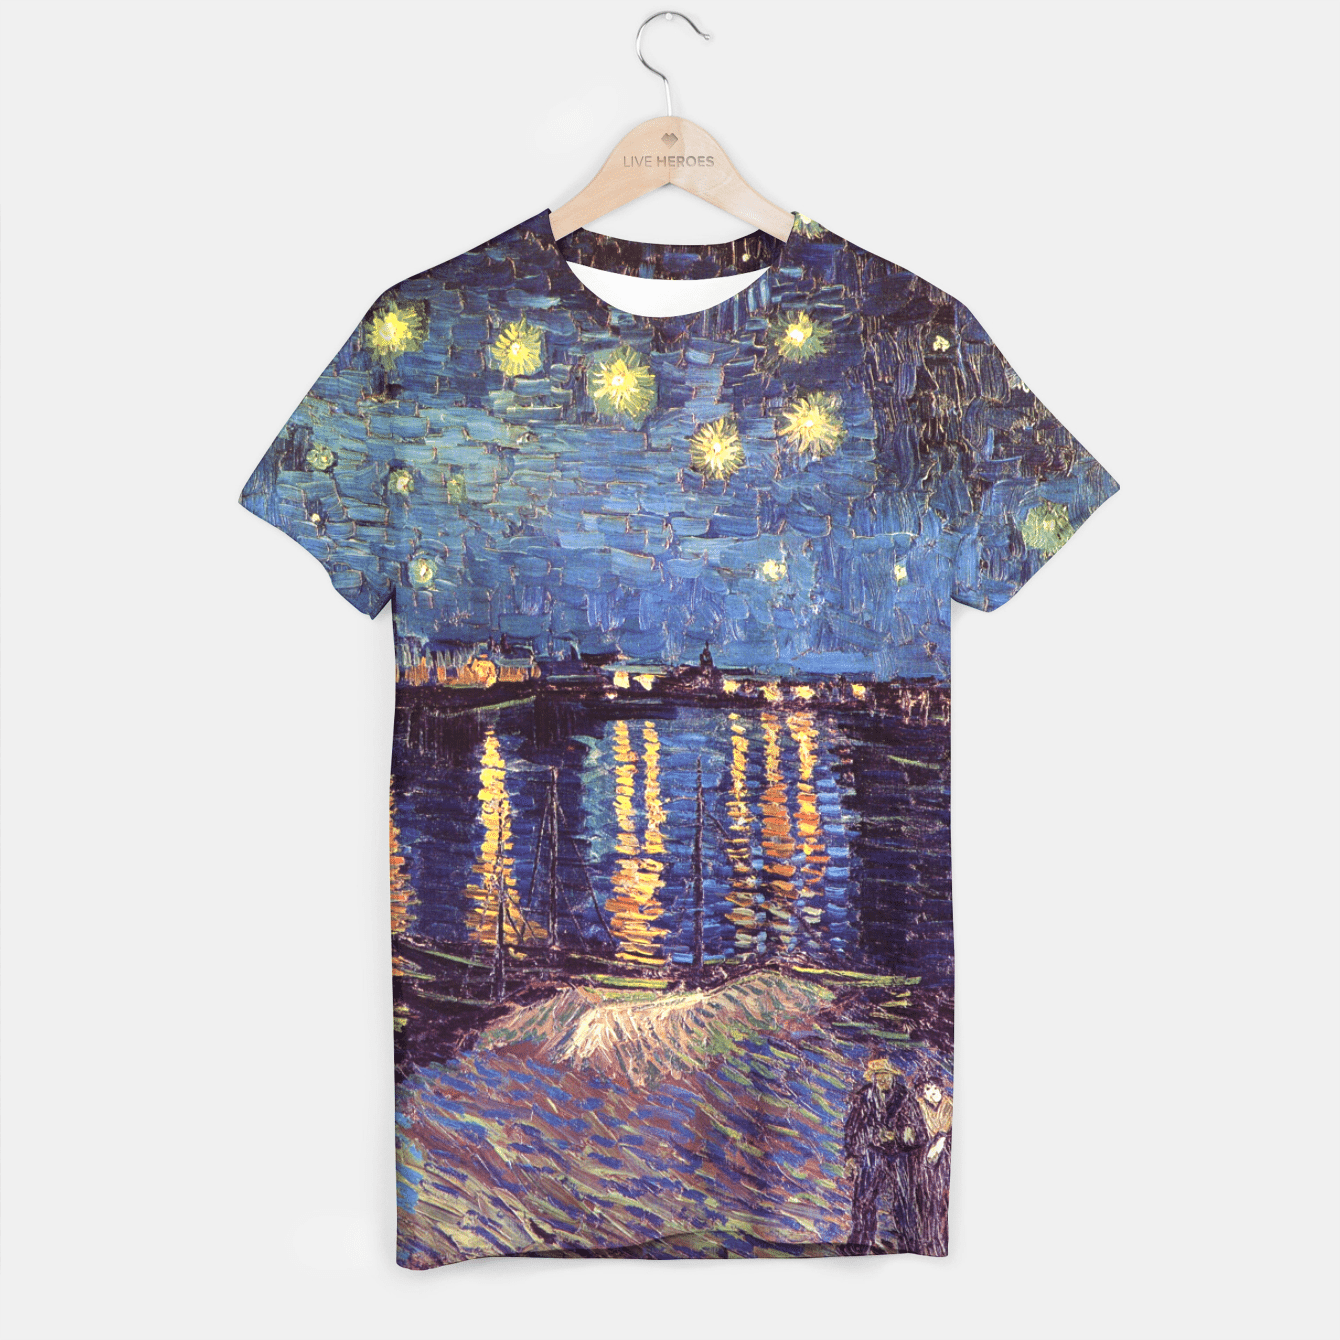 STARRY NiGHT OVER THE RHONE BY ViNCENT VAN GOGH T-shirt, Live Heroes